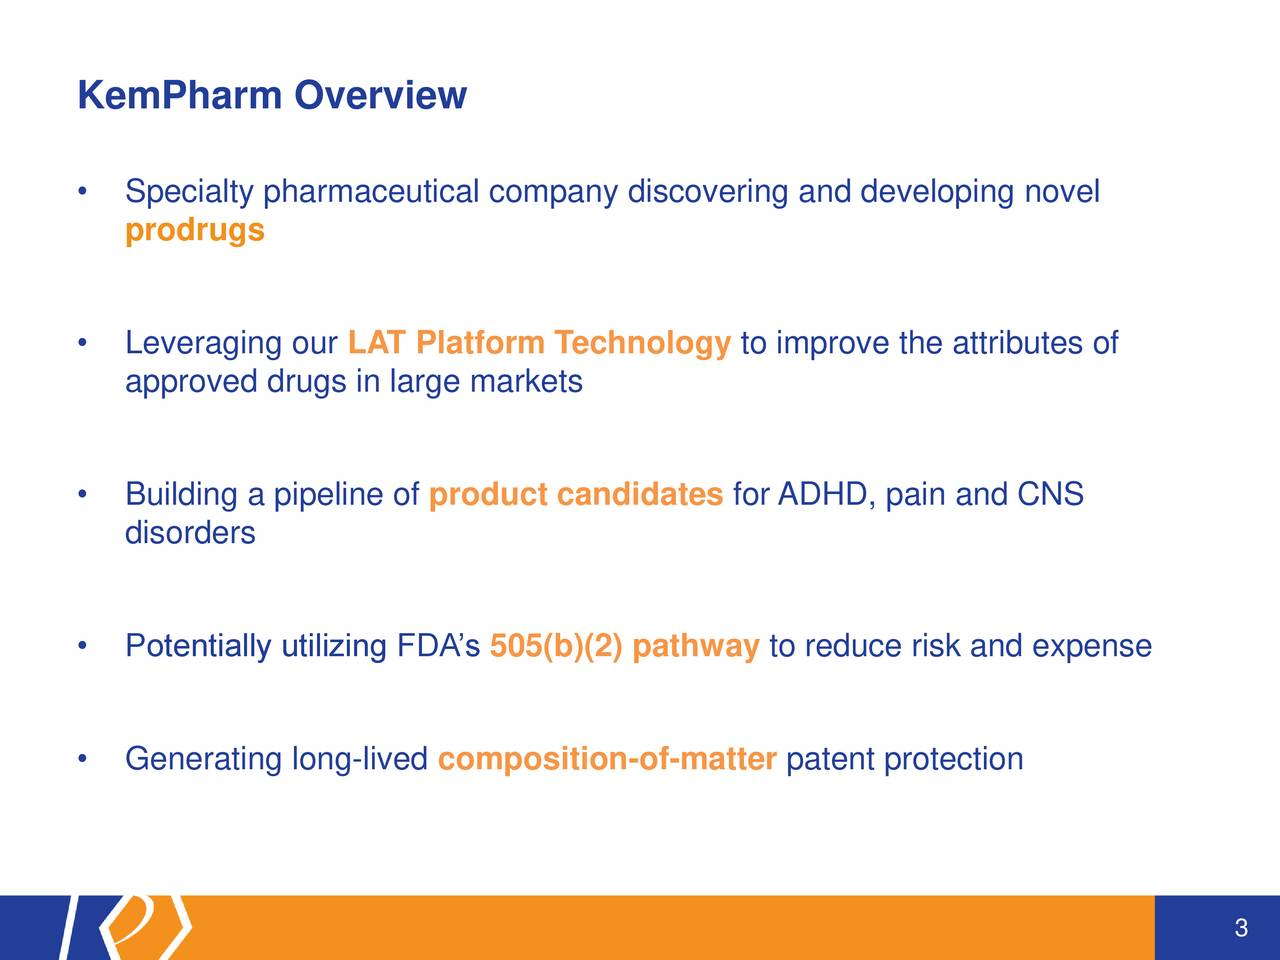 Specialty pharmaceutical company discovering and developing novel prodrugs Leveraging our LAT Platform Technology to improve the attributes of approved drugs in large markets Building a pipeline of product candidates for ADHD, pain and CNS disorders Potentially utilizing FDAs 505(b)(2) pathway to reduce risk and expense Generating long-lived composition-of-matter patent protection 3